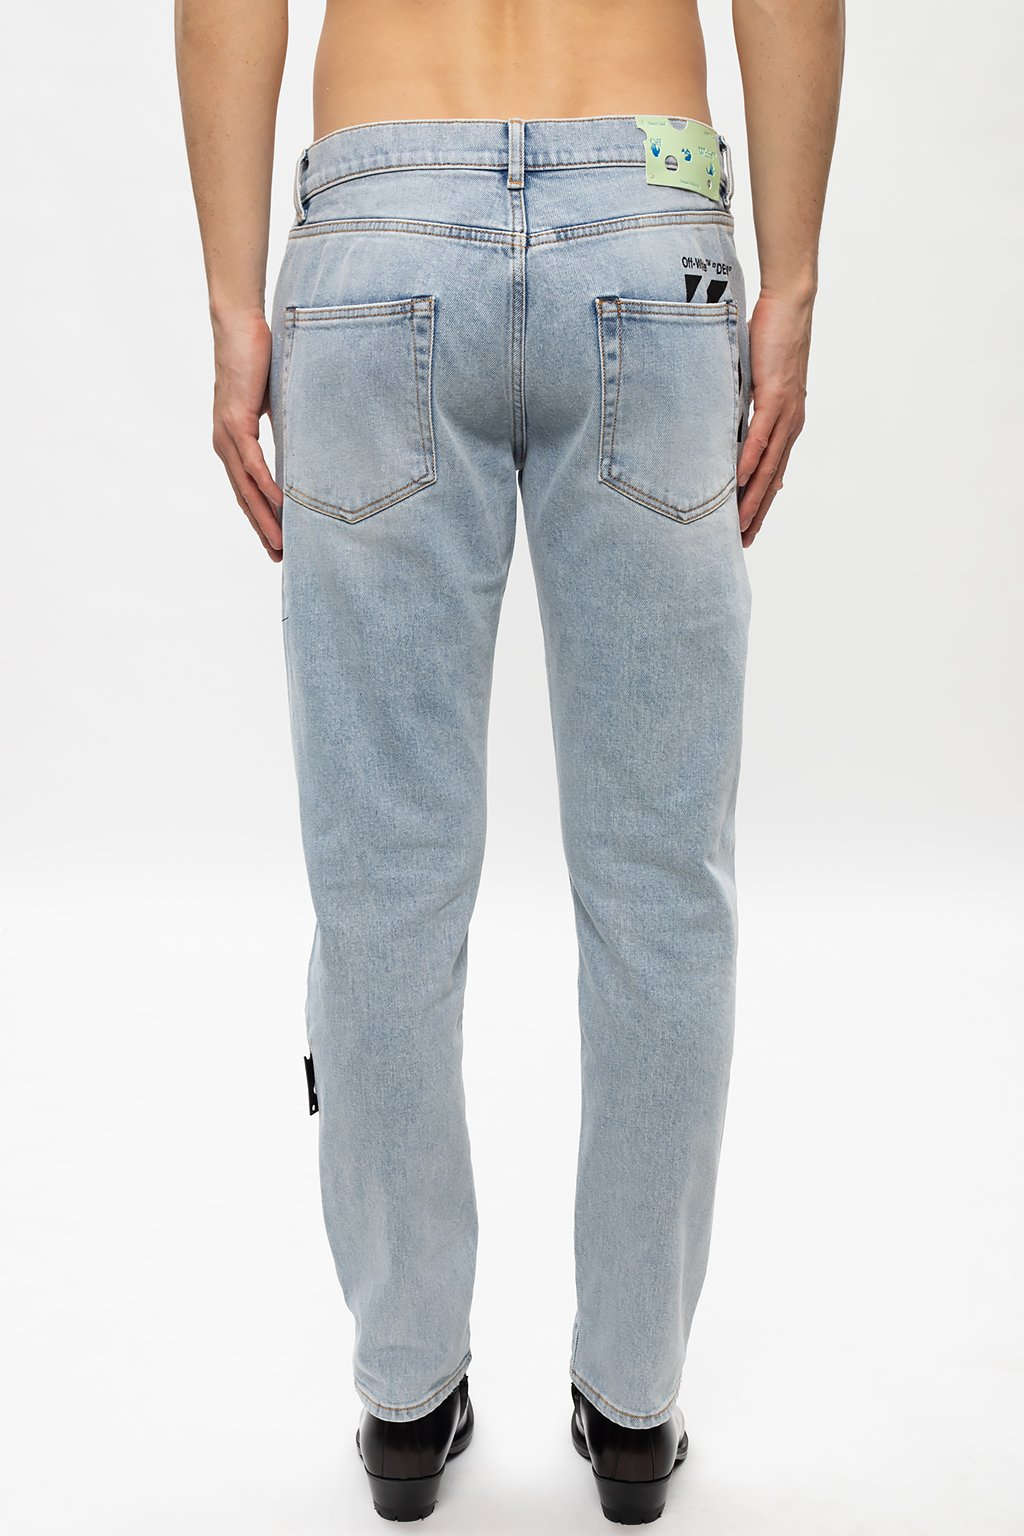 Off-White Jeans with logo